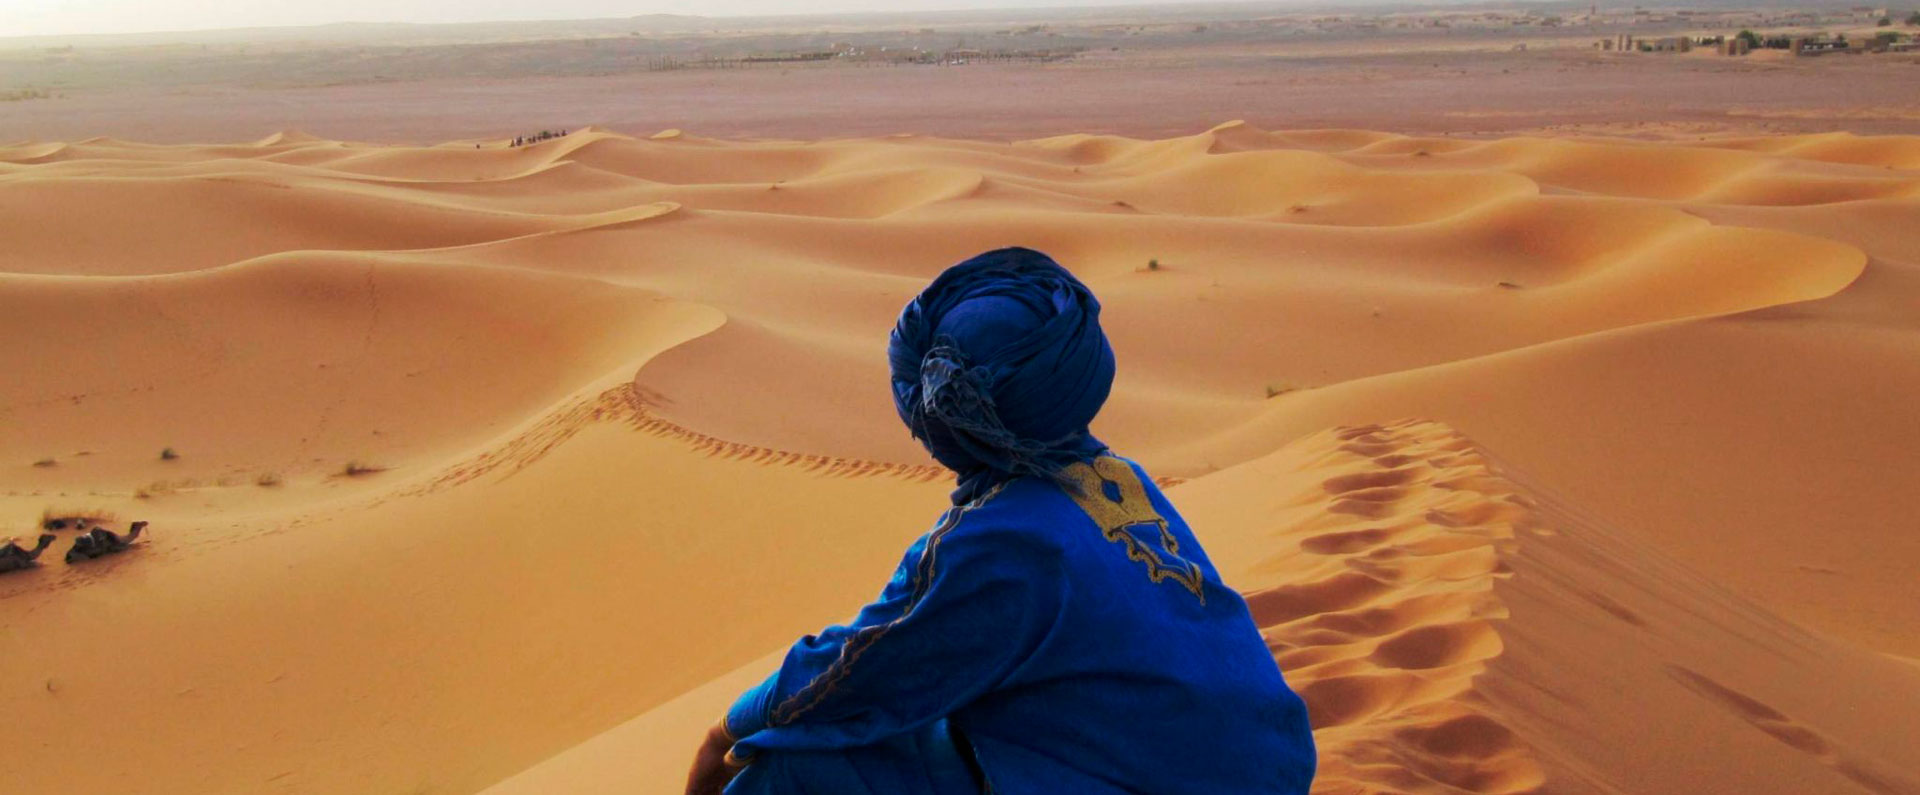 3 Days Desert Tour From Marrakech To Fes